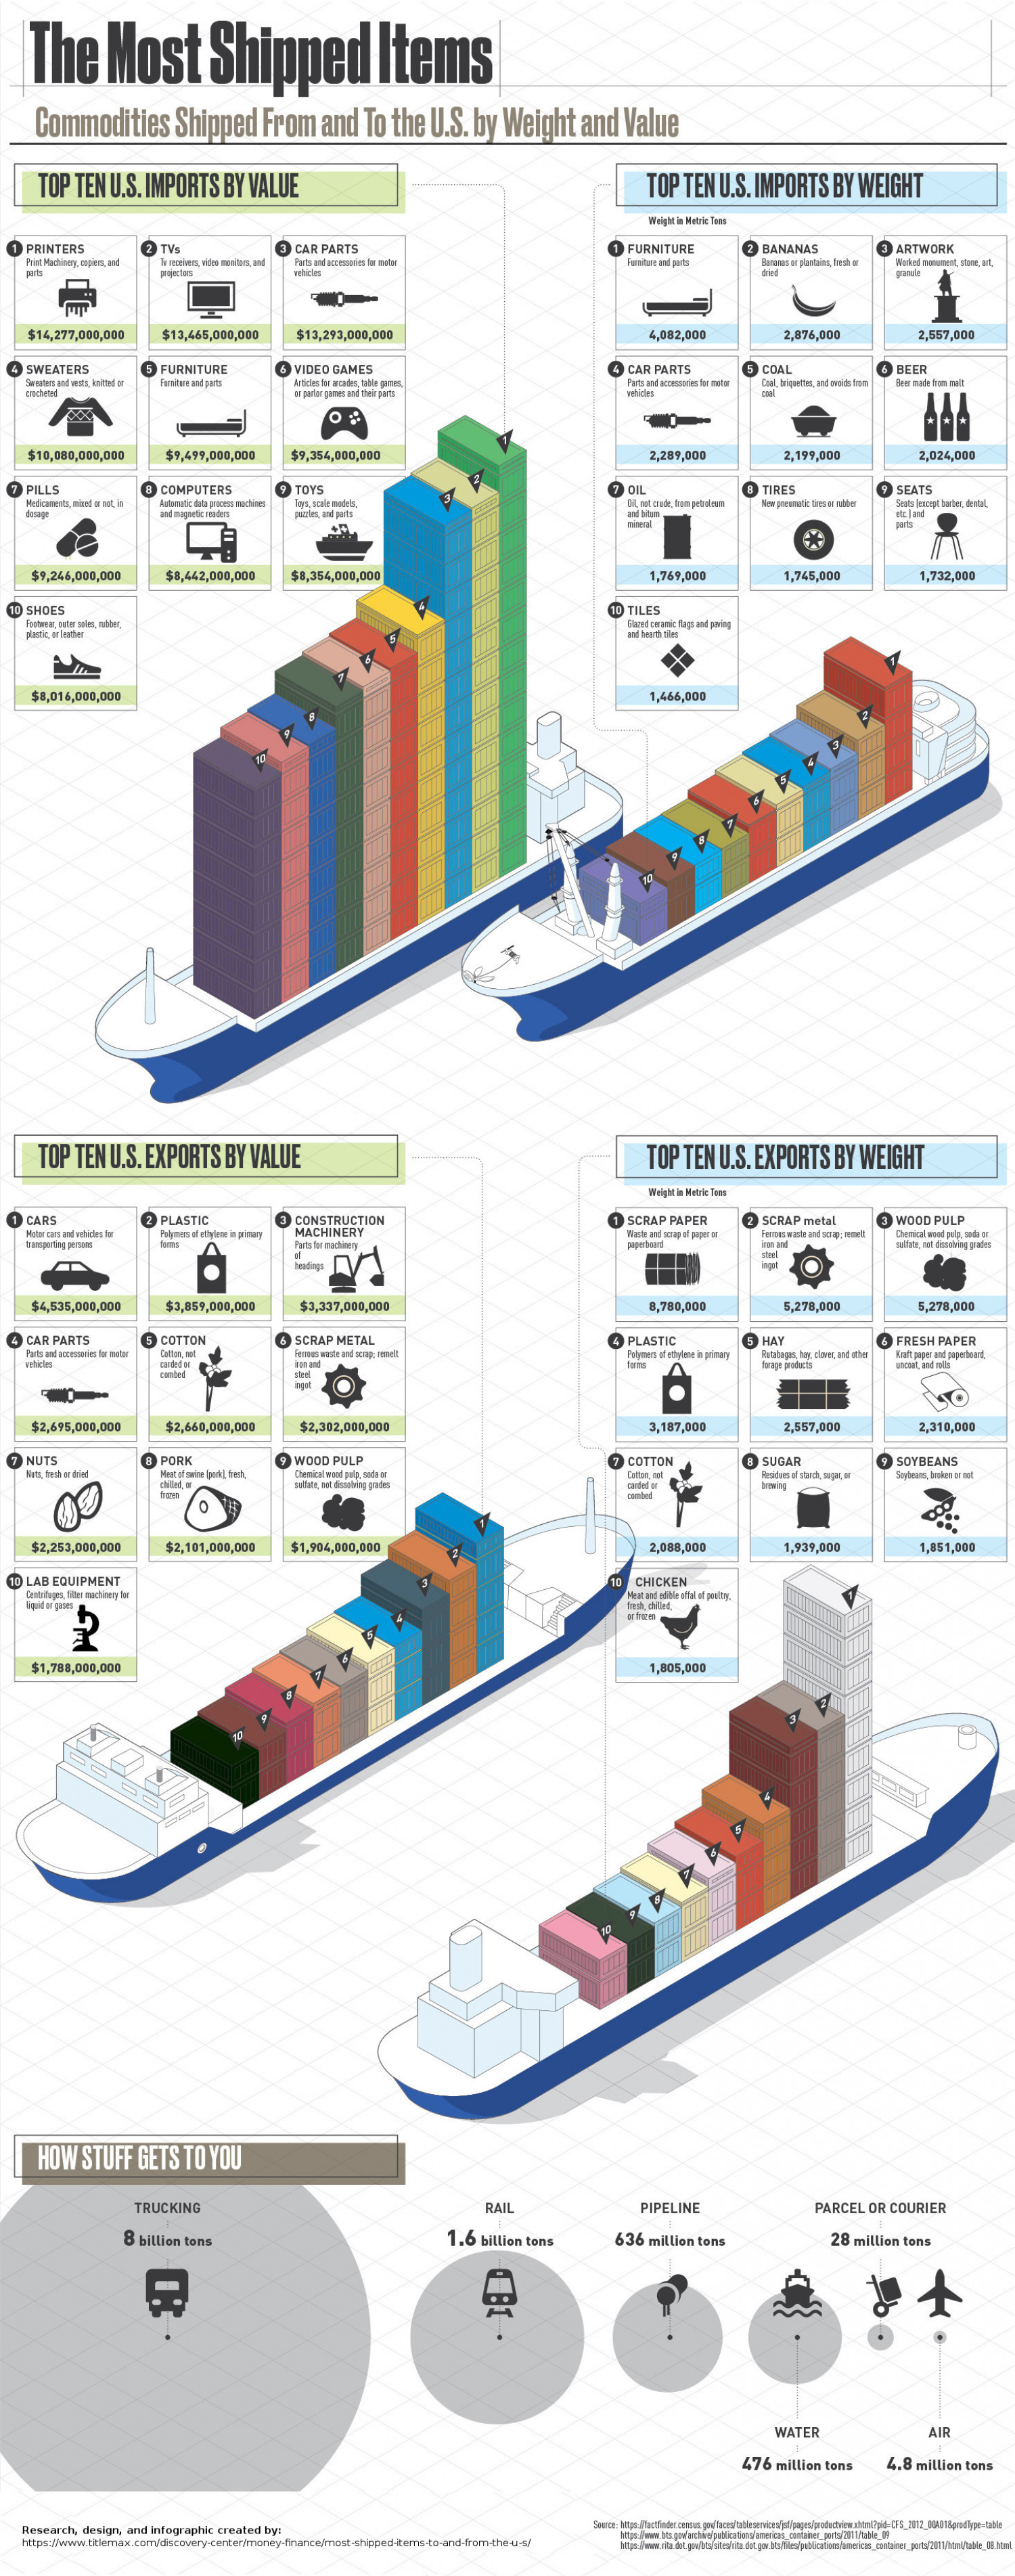 The Most Shipped Items to and From the U.S. by Weight and Value  Infographic